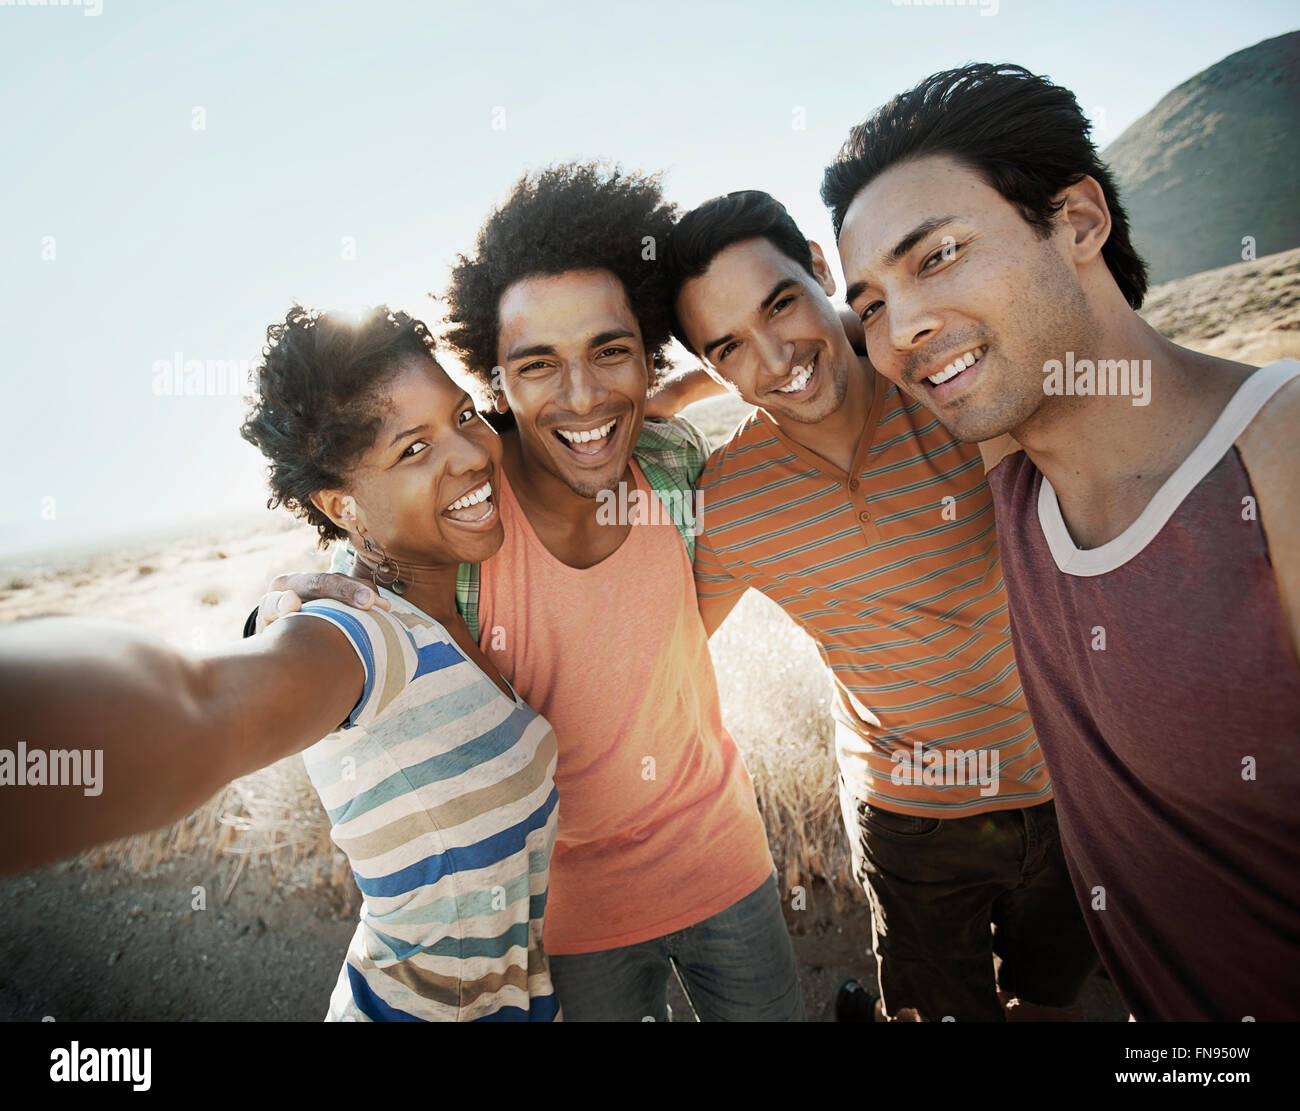 A group of friends, men and women, heads together posing for a selfy in the heat of the day. - Stock Image